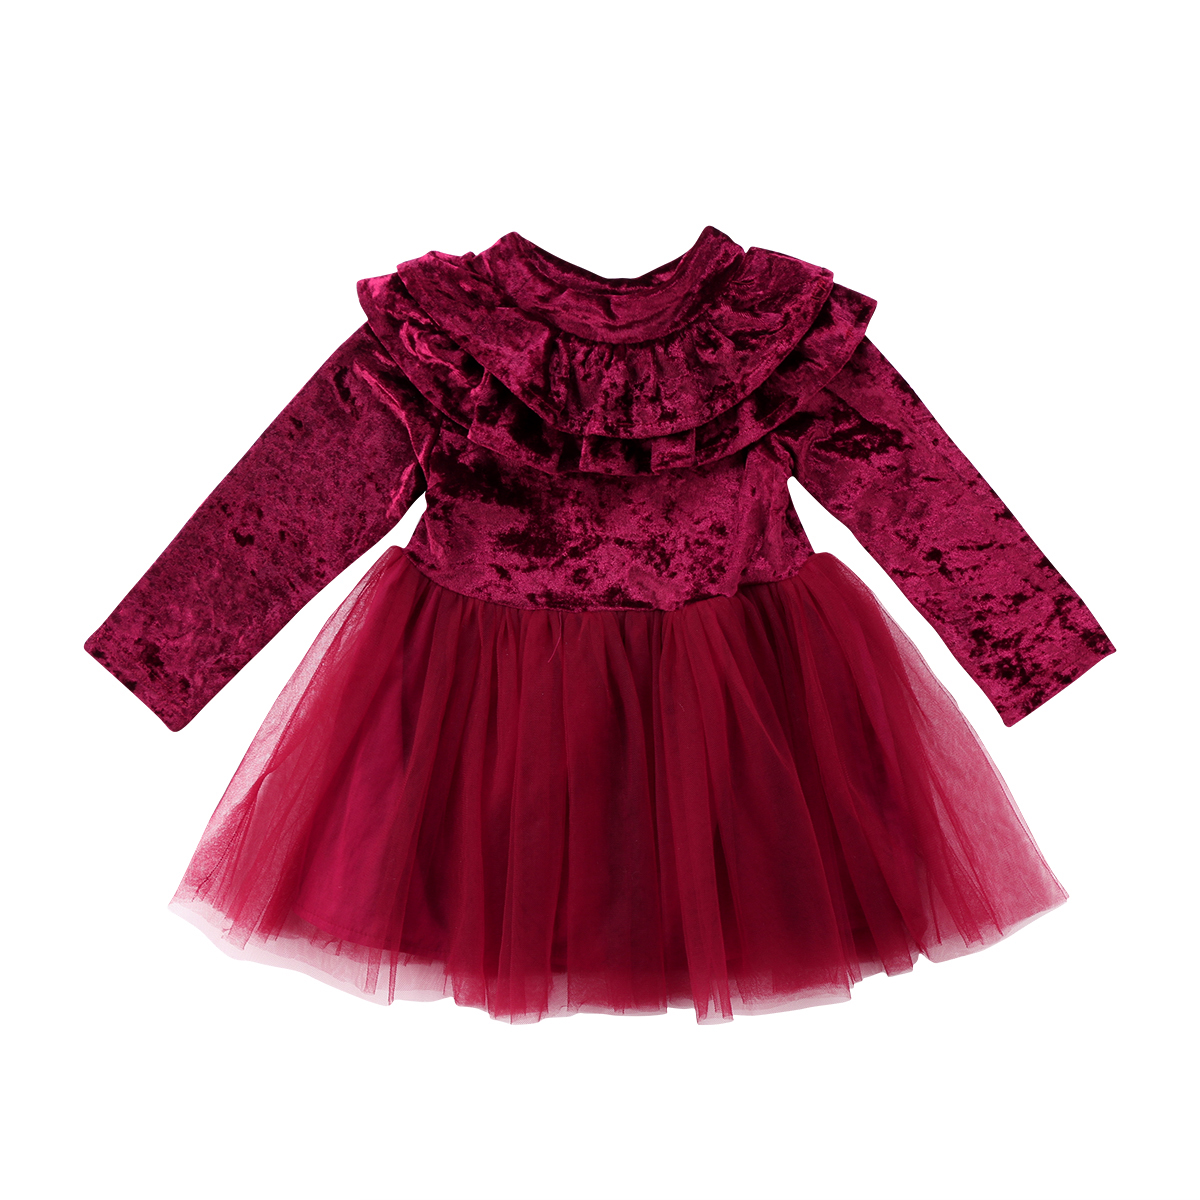 Princess Kids Baby Girls Dress Velvet Fleece Long Sleeve Midi Cute Tiered Tutu Party Ruffle Tulle Tutu Dresses Girl 1-6T